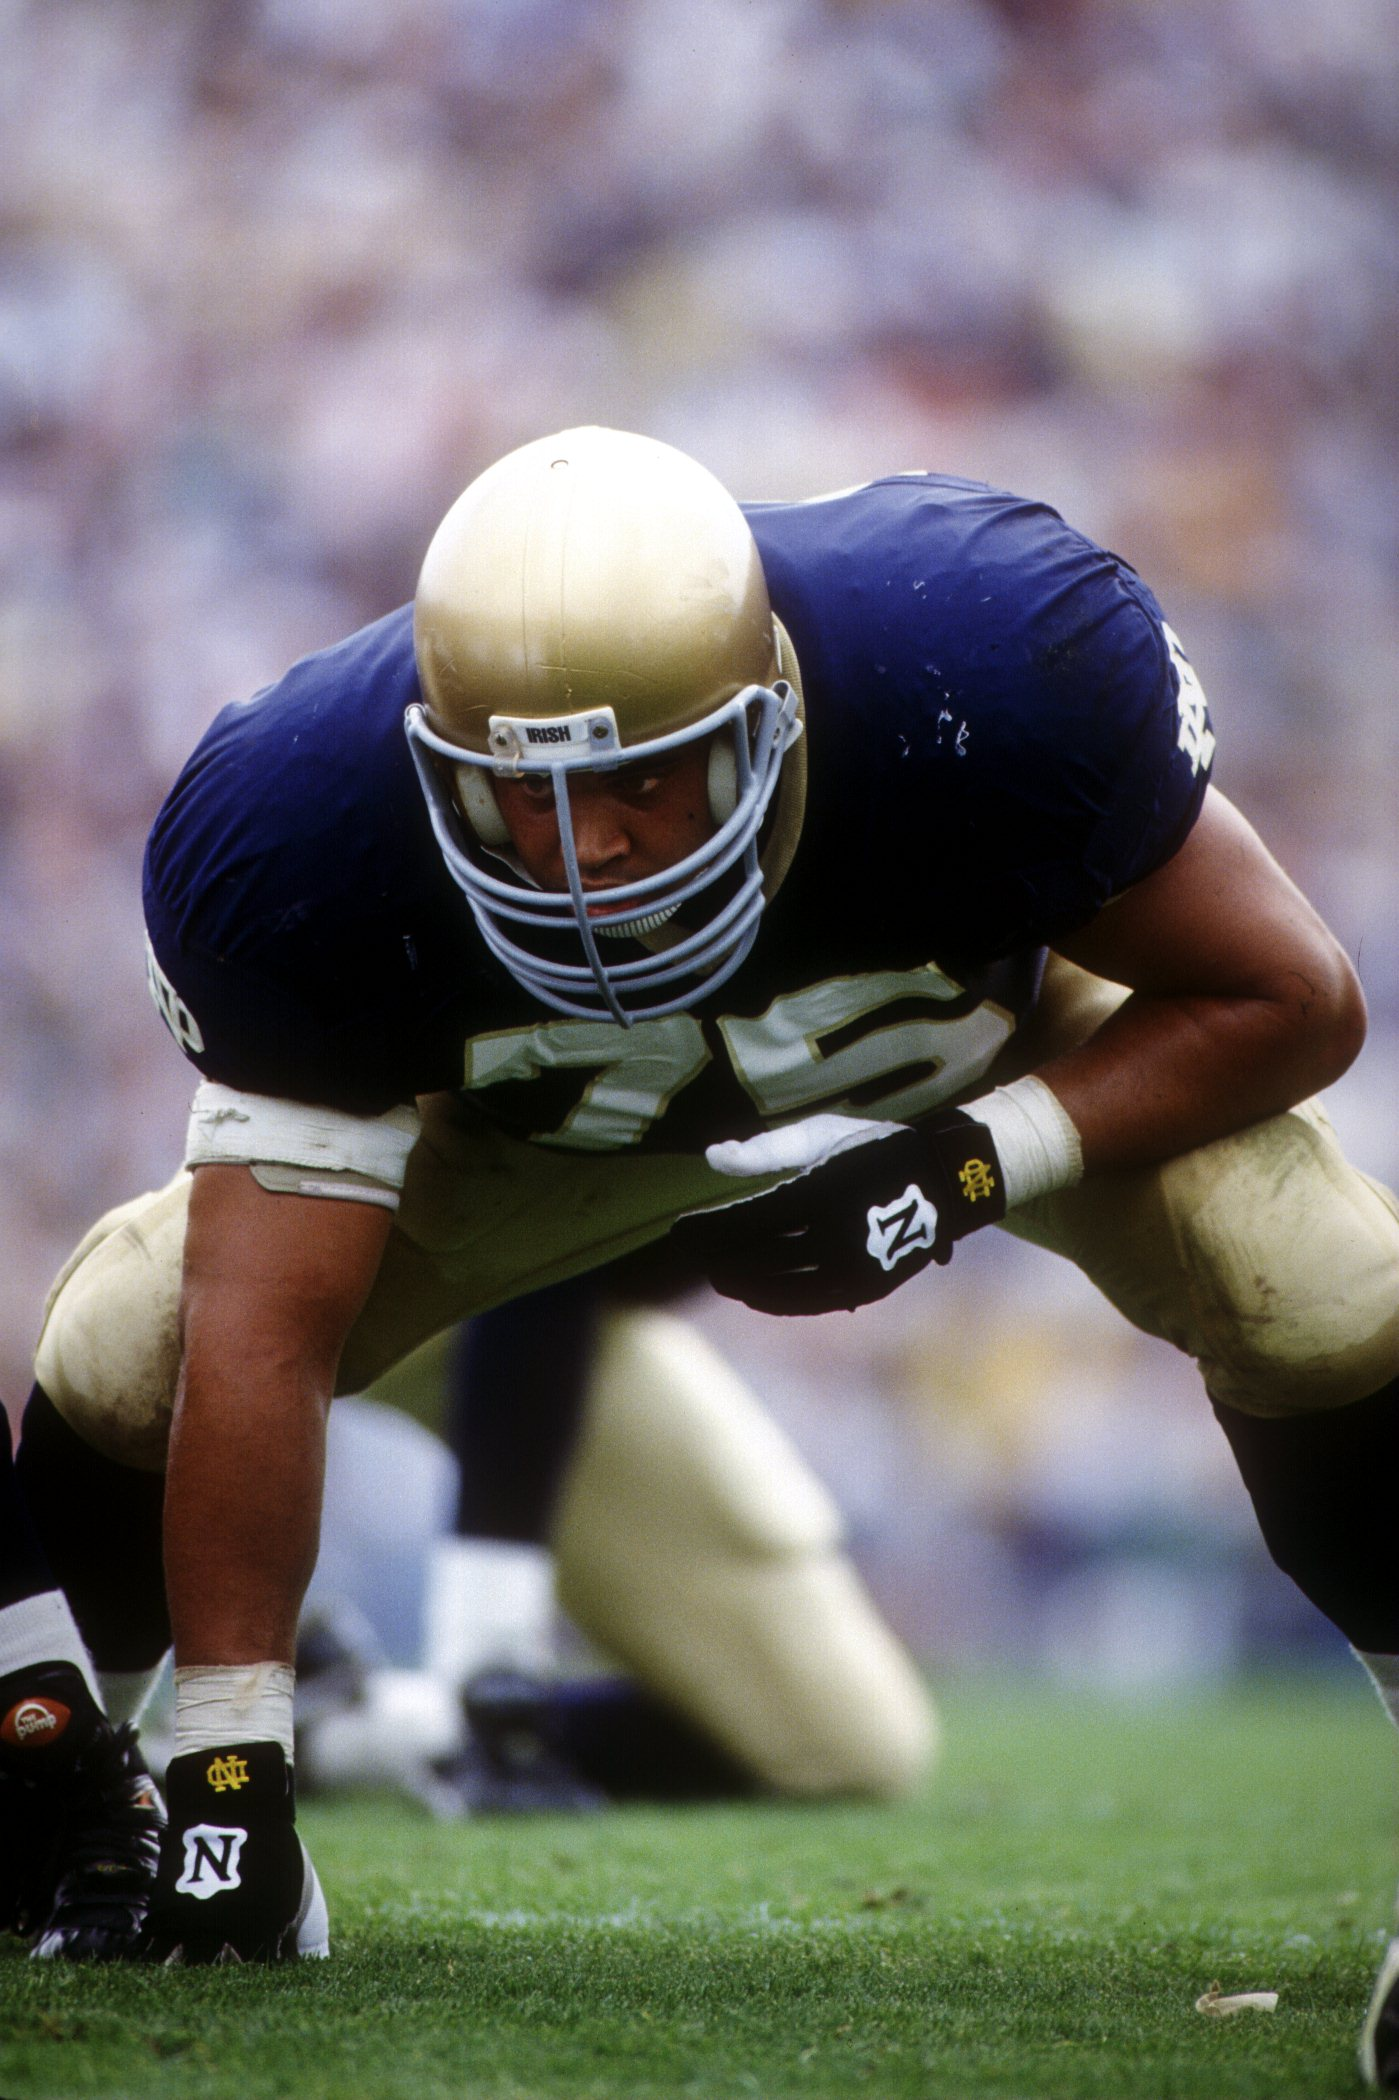 18 Sep 1993: NOTRE DAME DEFENSIVE LINEMAN AARON TAYLOR LINES UP AGAINST MICHIGAN STATE DURING THE FIGHTING IRISH''S 36-14 VICTORY.